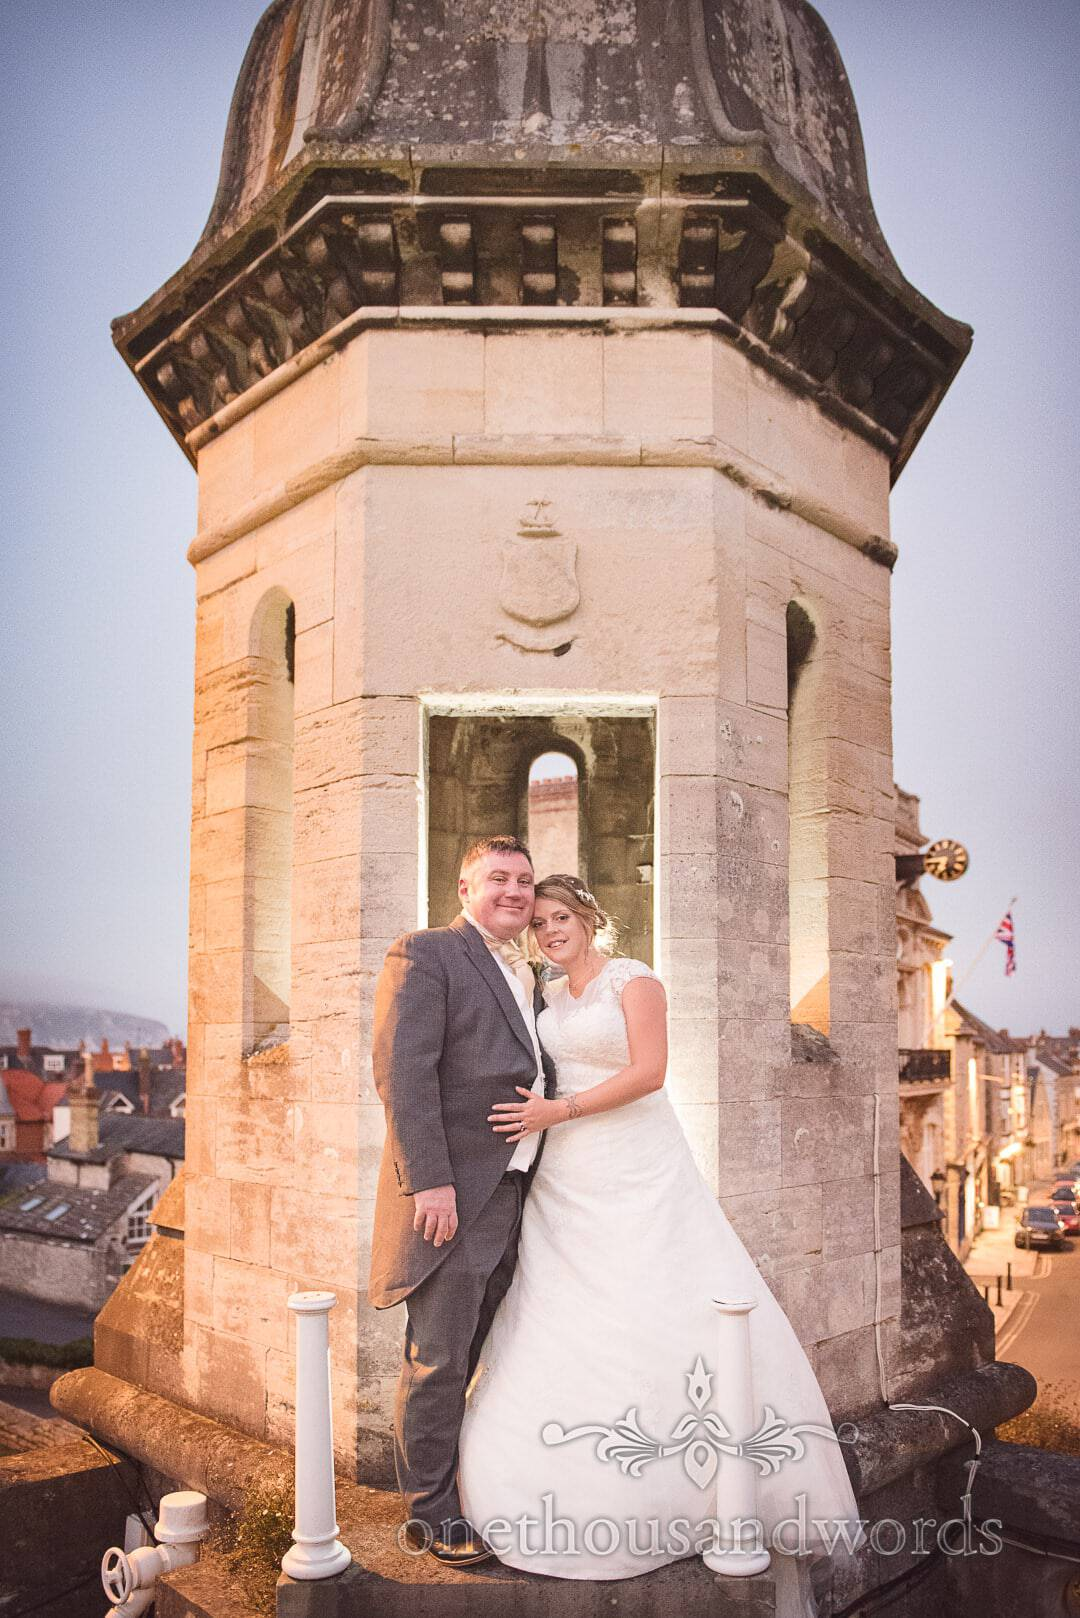 Bride and groom by Purbeck stone turret overlooking Swanage town at night